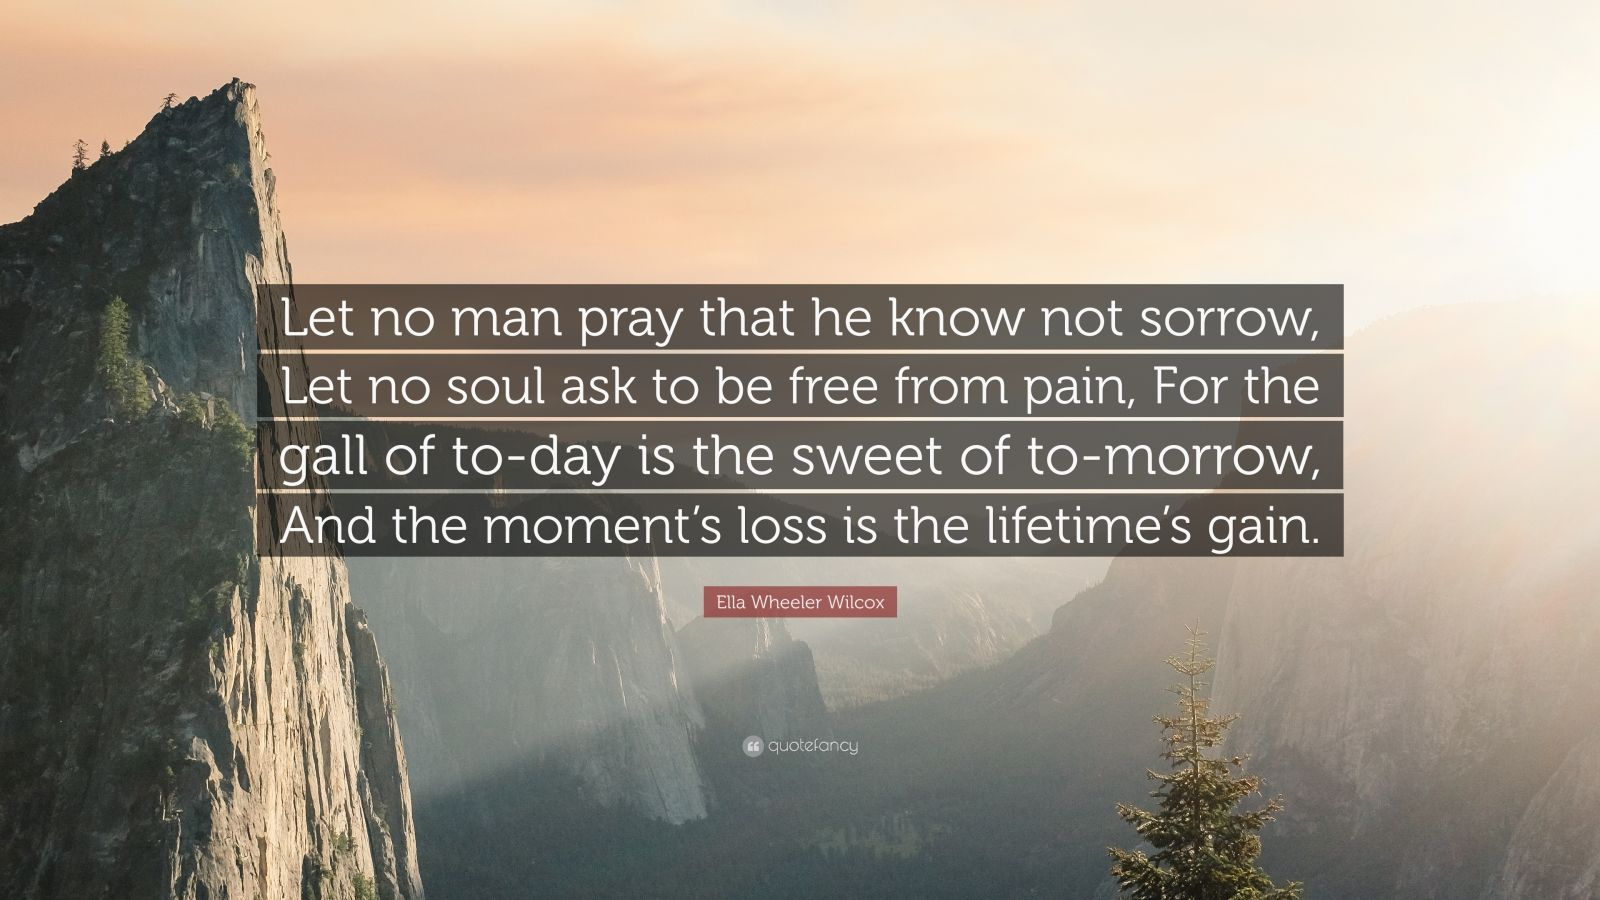 """Ella Wheeler Wilcox Quote: """"Let no man pray that he know not sorrow, Let no soul ask to be free from pain, For the gall of to-day is the sweet of to-morrow, And the moment's loss is the lifetime's gain."""""""